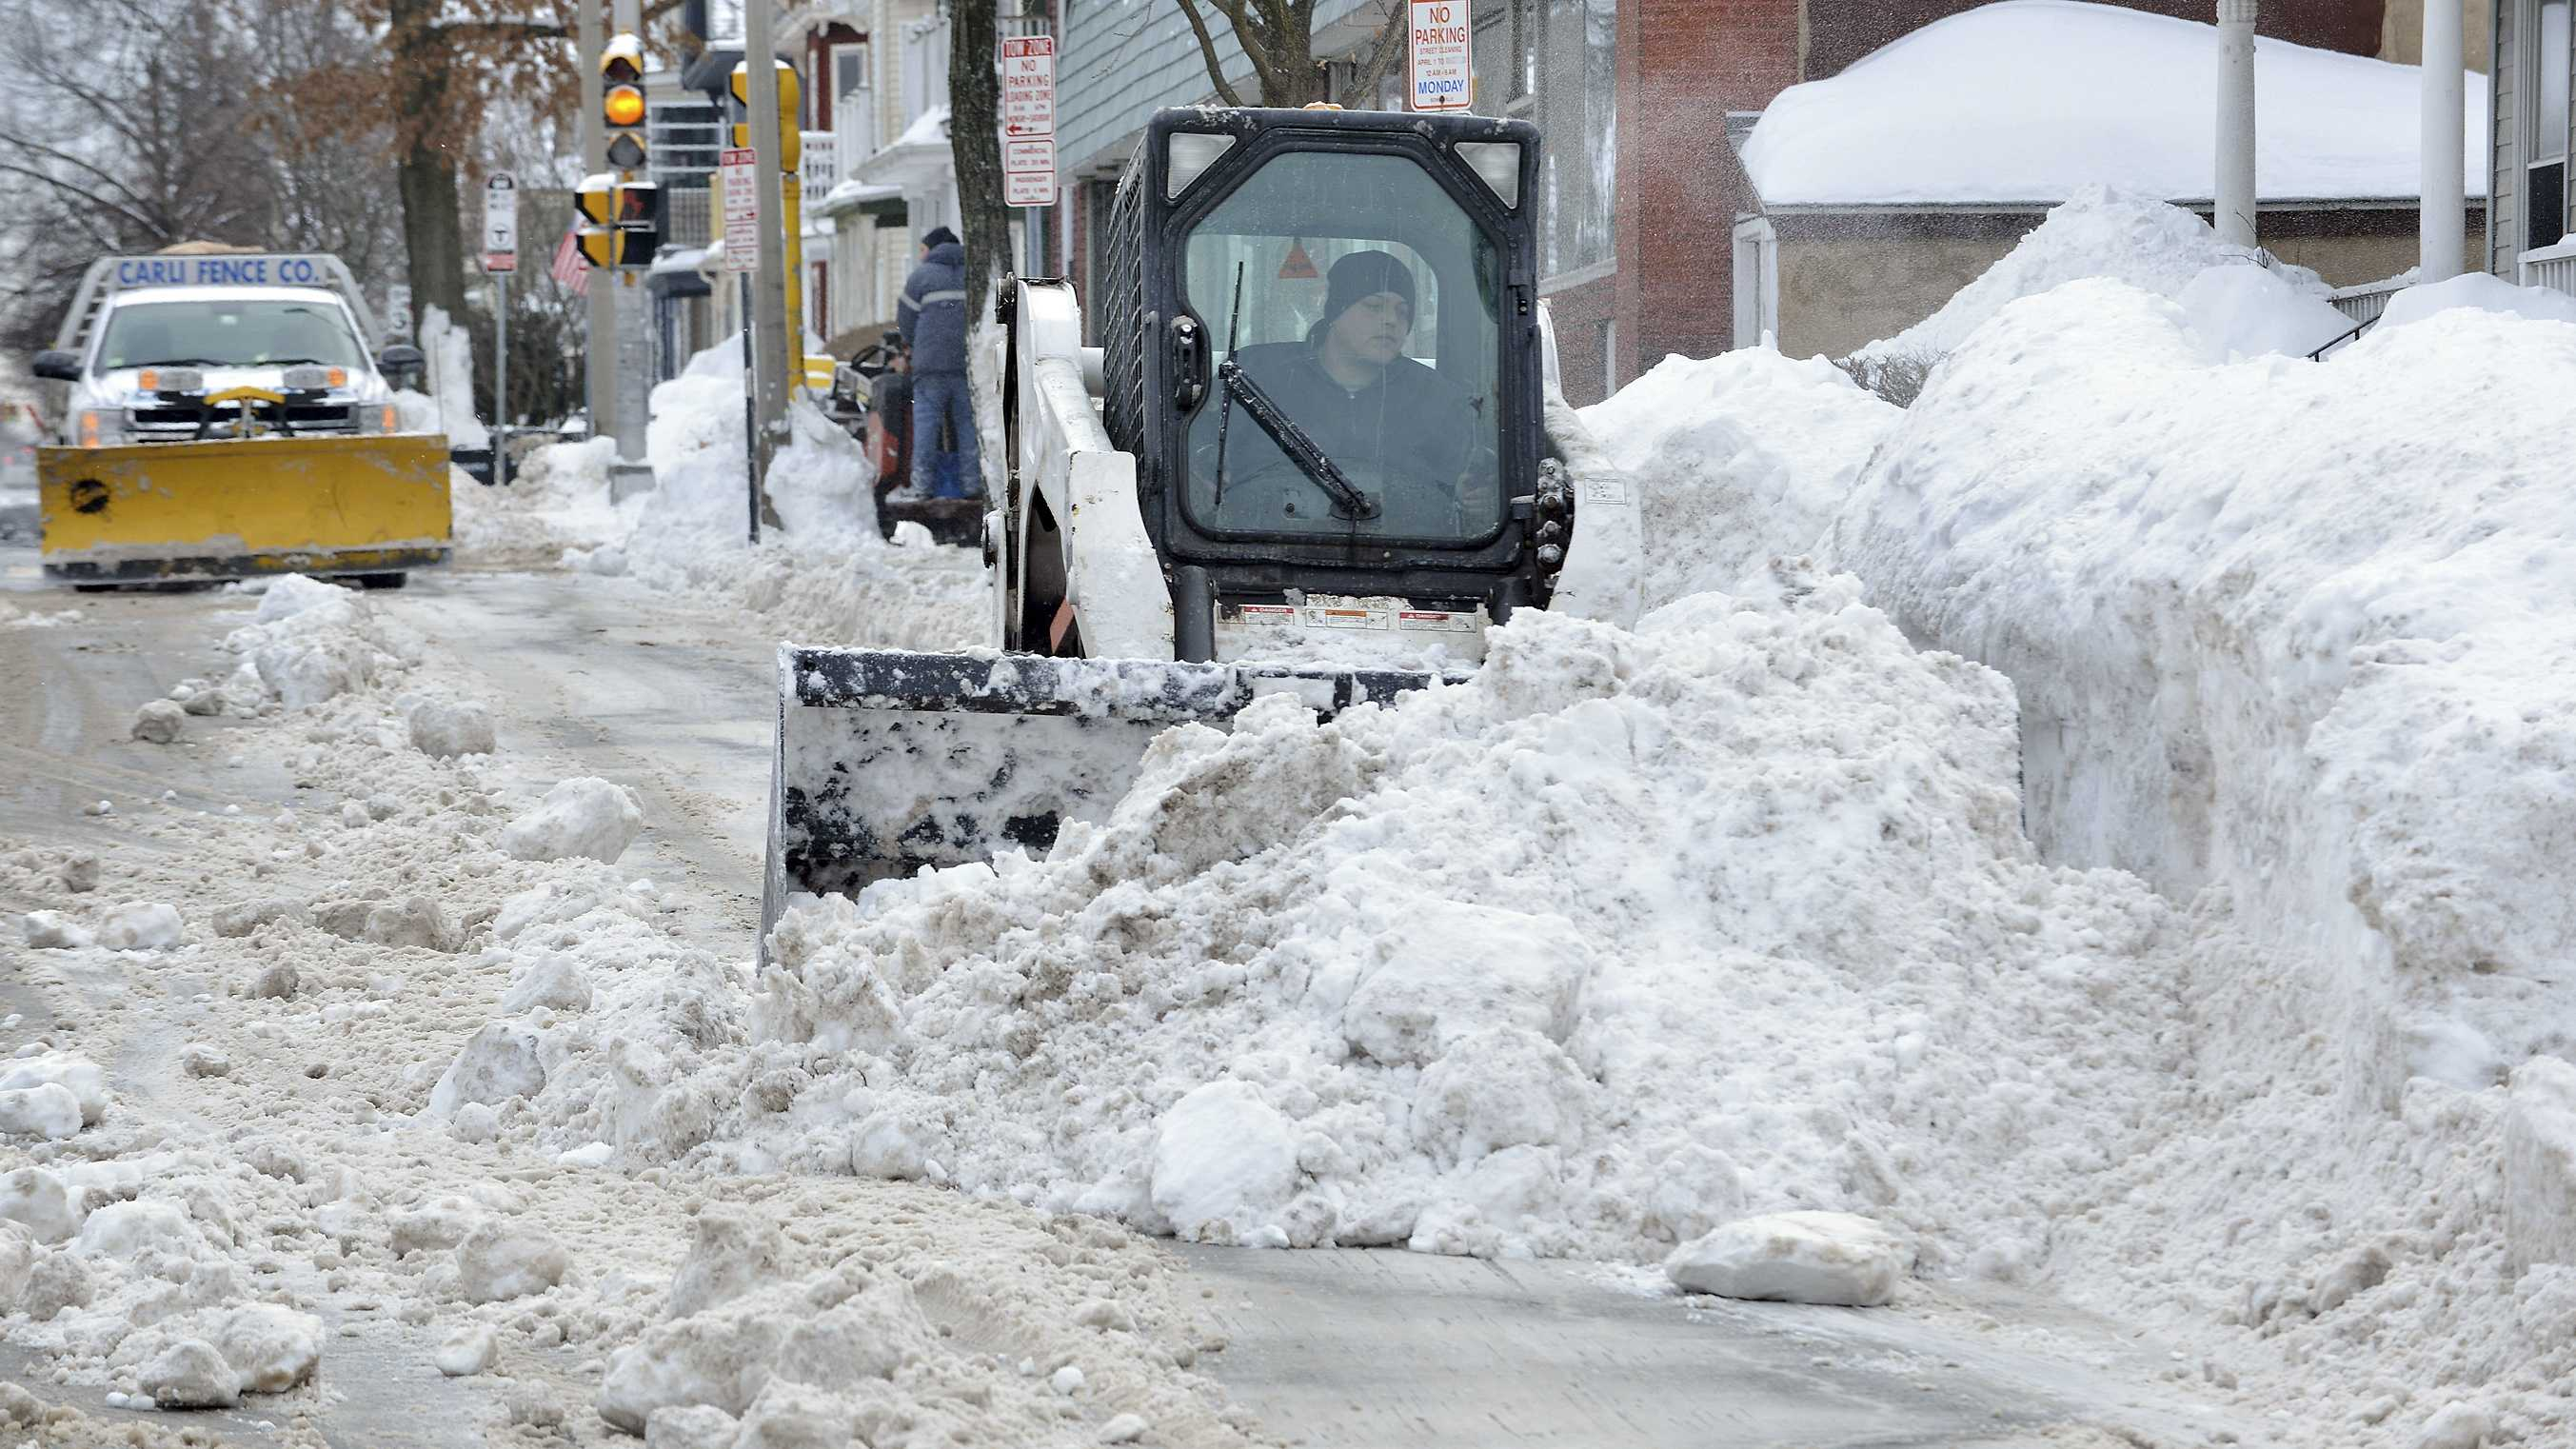 A worker uses a compact front-end loader to clear snow from a road to be removed by a dump truck near Davis Square in Somerville